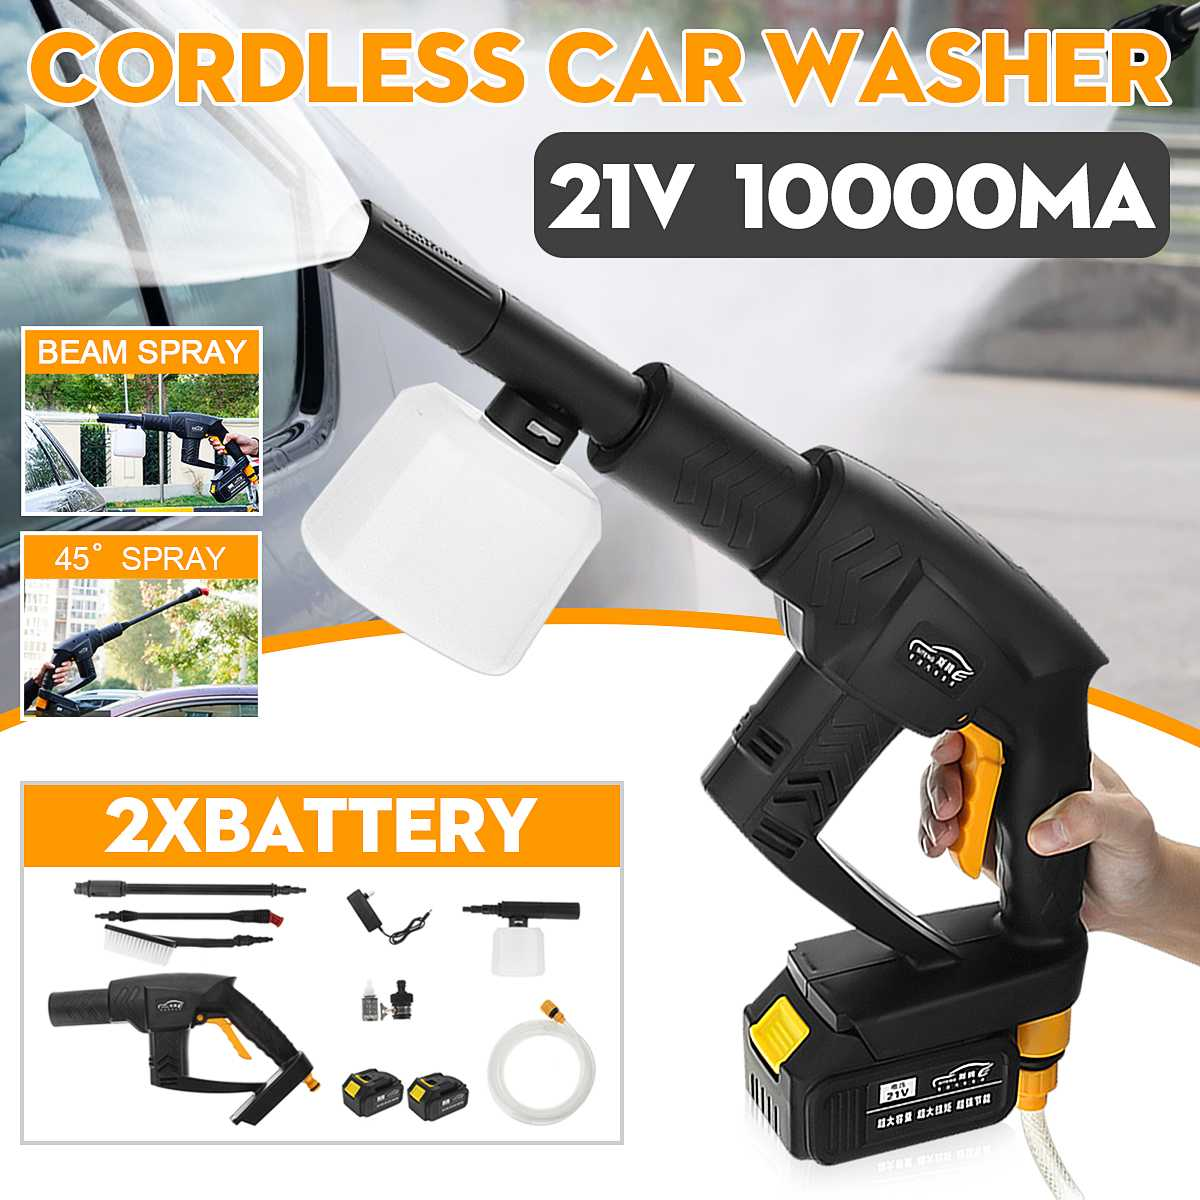 12pcs/set 21V Car Washer Cordless Rechargeable Car Washer 0.9Mpa High Pressure Hose Cleaner + 2x10000mA Battery Washing Machine